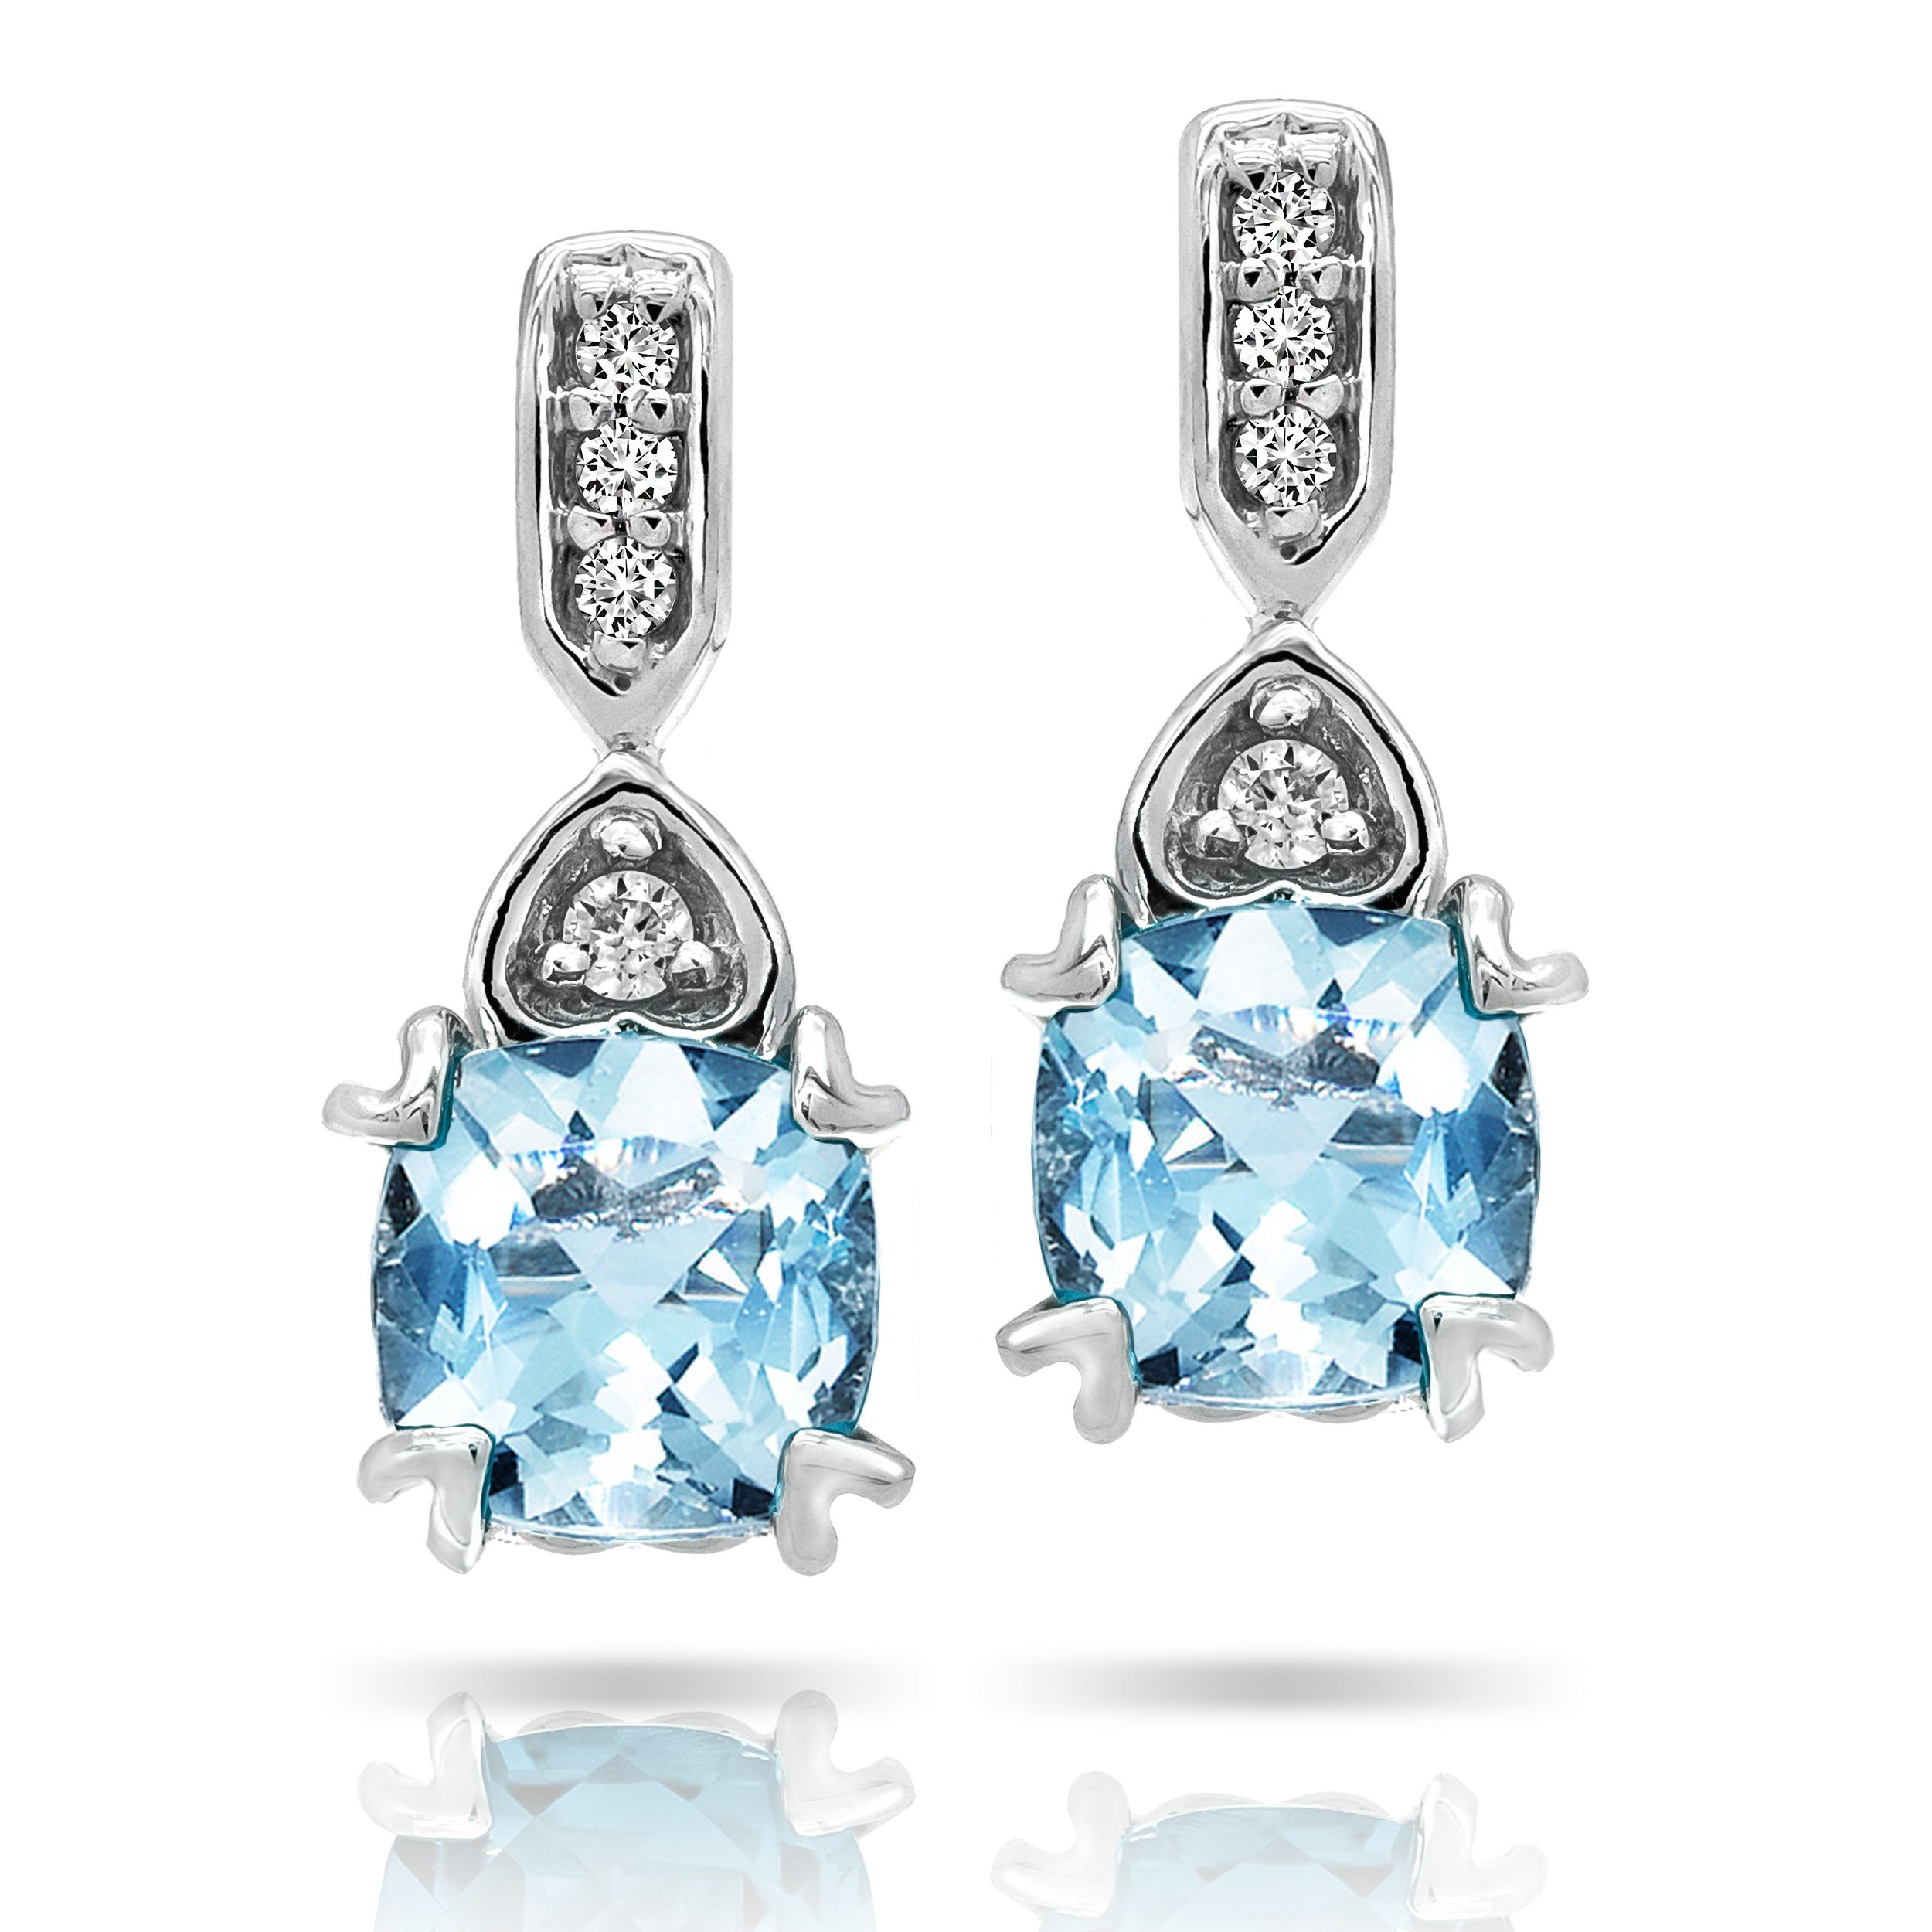 Aquamarine & Diamond Earrings in 10k White Gold